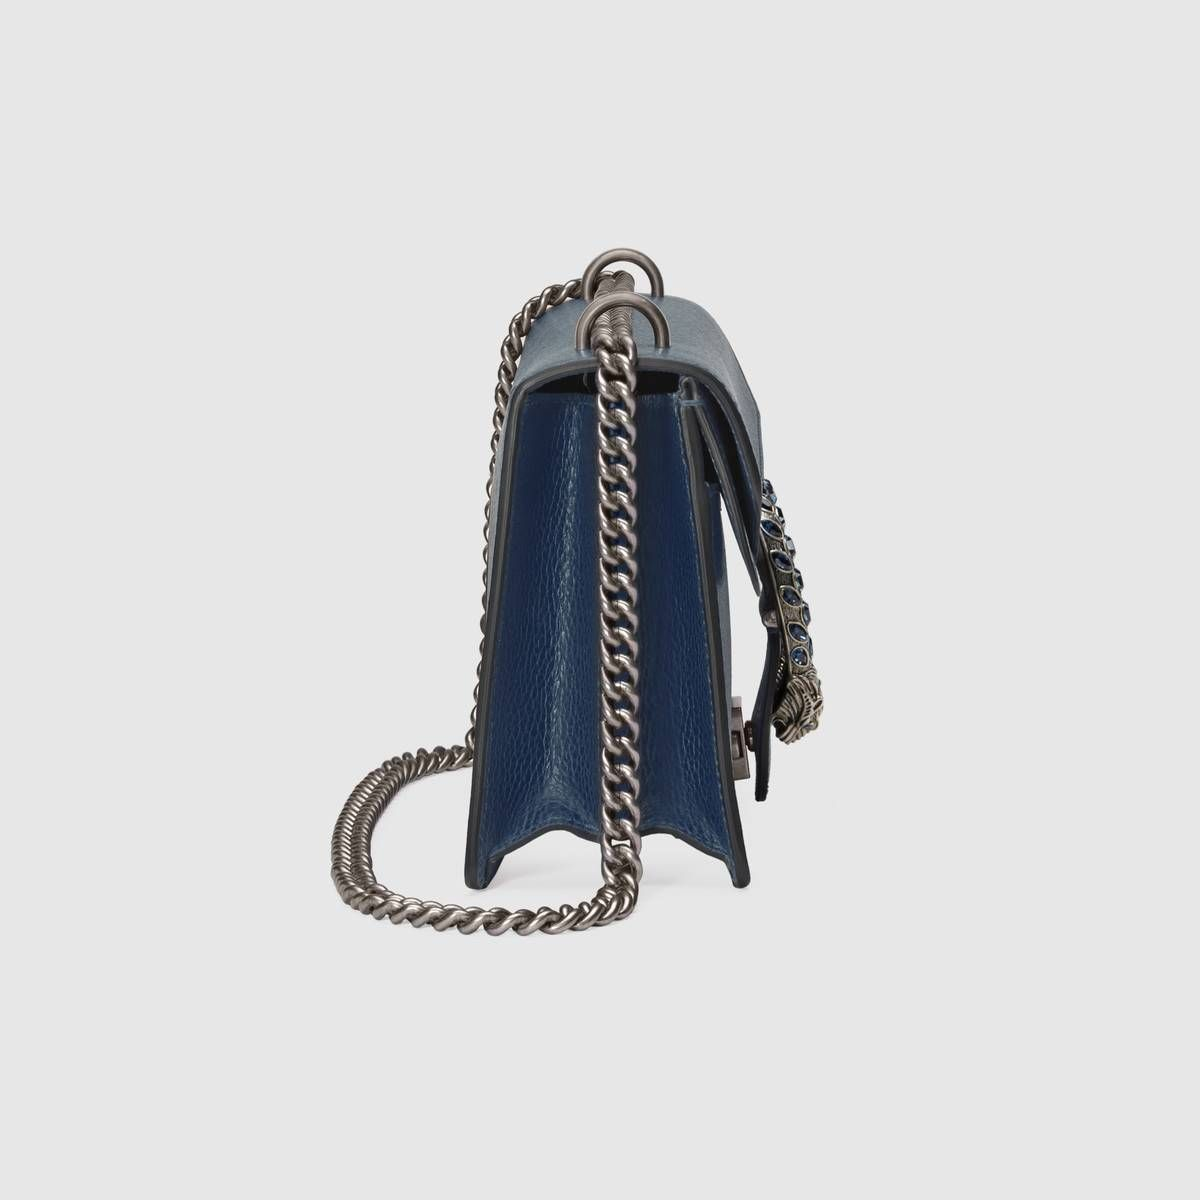 5b4d7d34bc22 Shop the Dionysus small shoulder bag by Gucci. The Dionysus shoulder bag  with the now